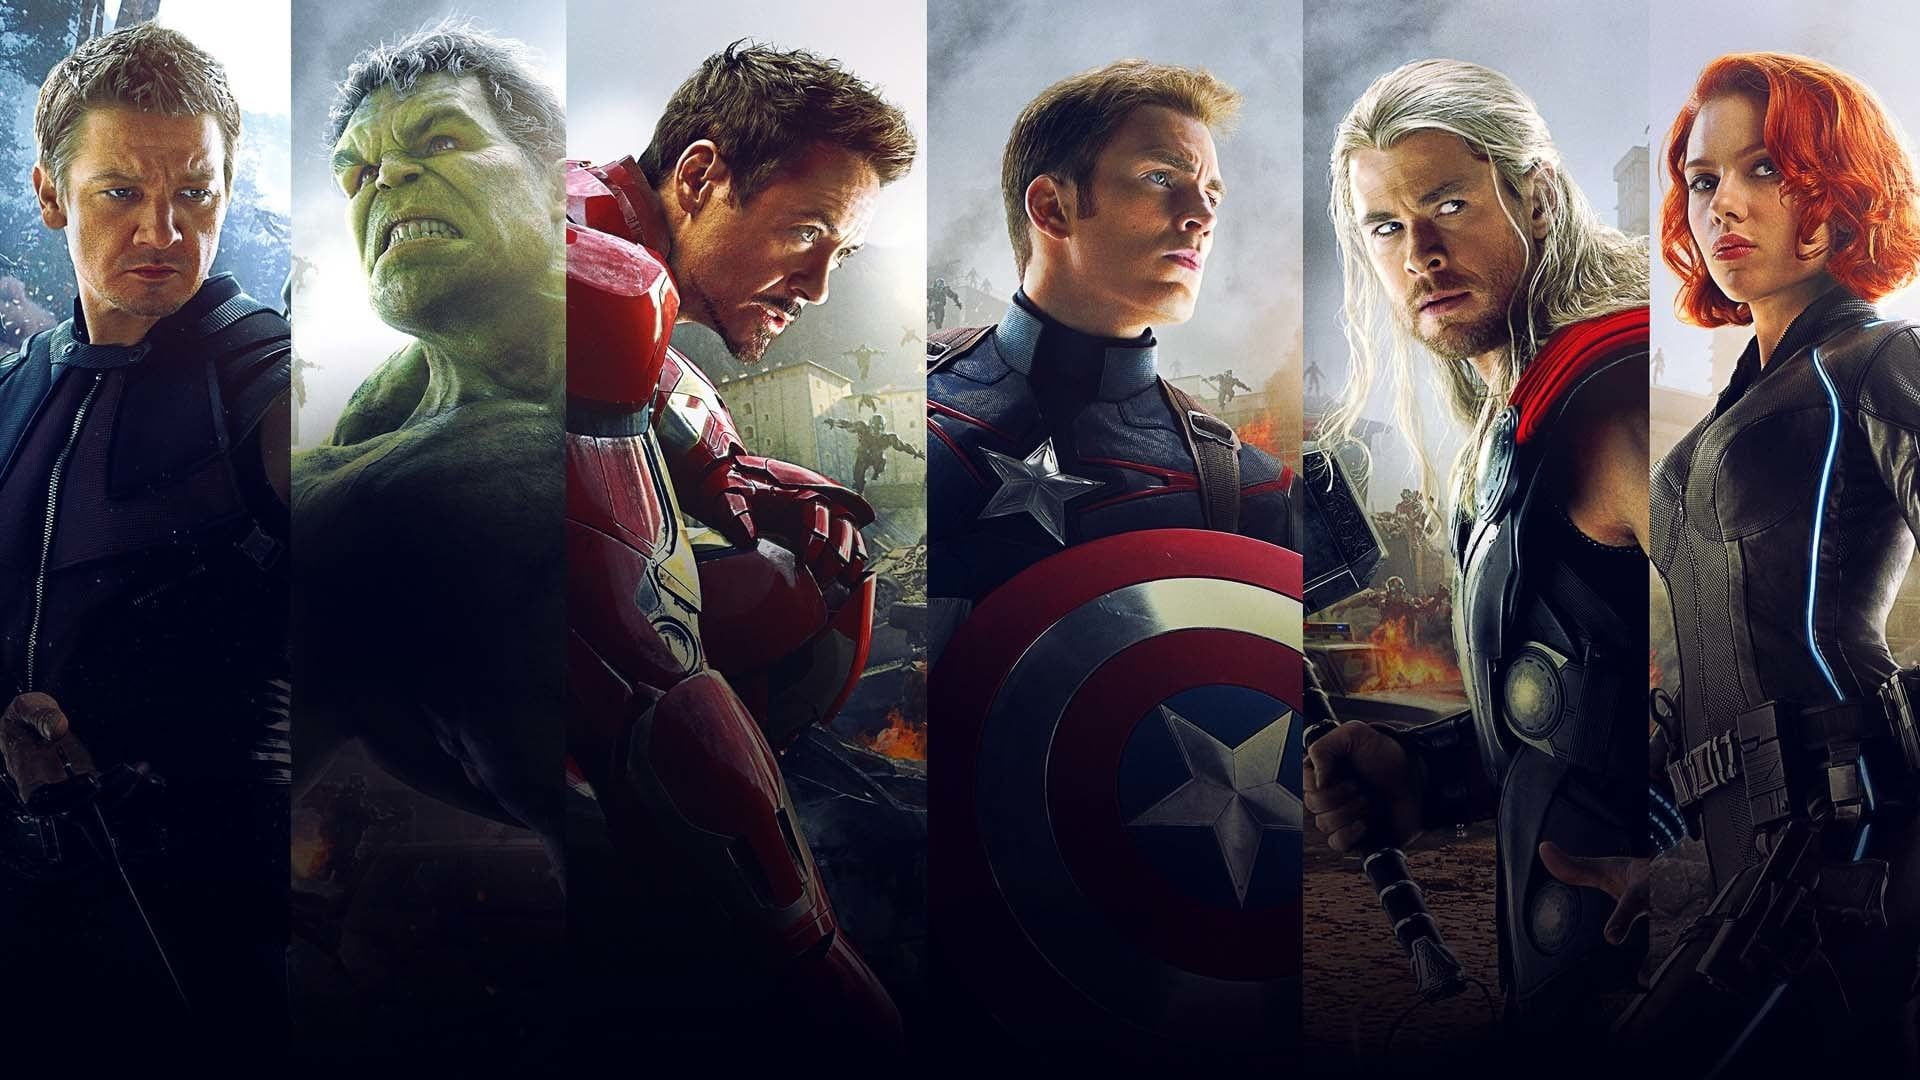 Watch Avengers Age Of Ultron 2015 Full Movie Online Free When Tony Stark Tries To Jumpstart A Dormant Peacekeeping Pro Avengers Age Avengers Age Of Ultron